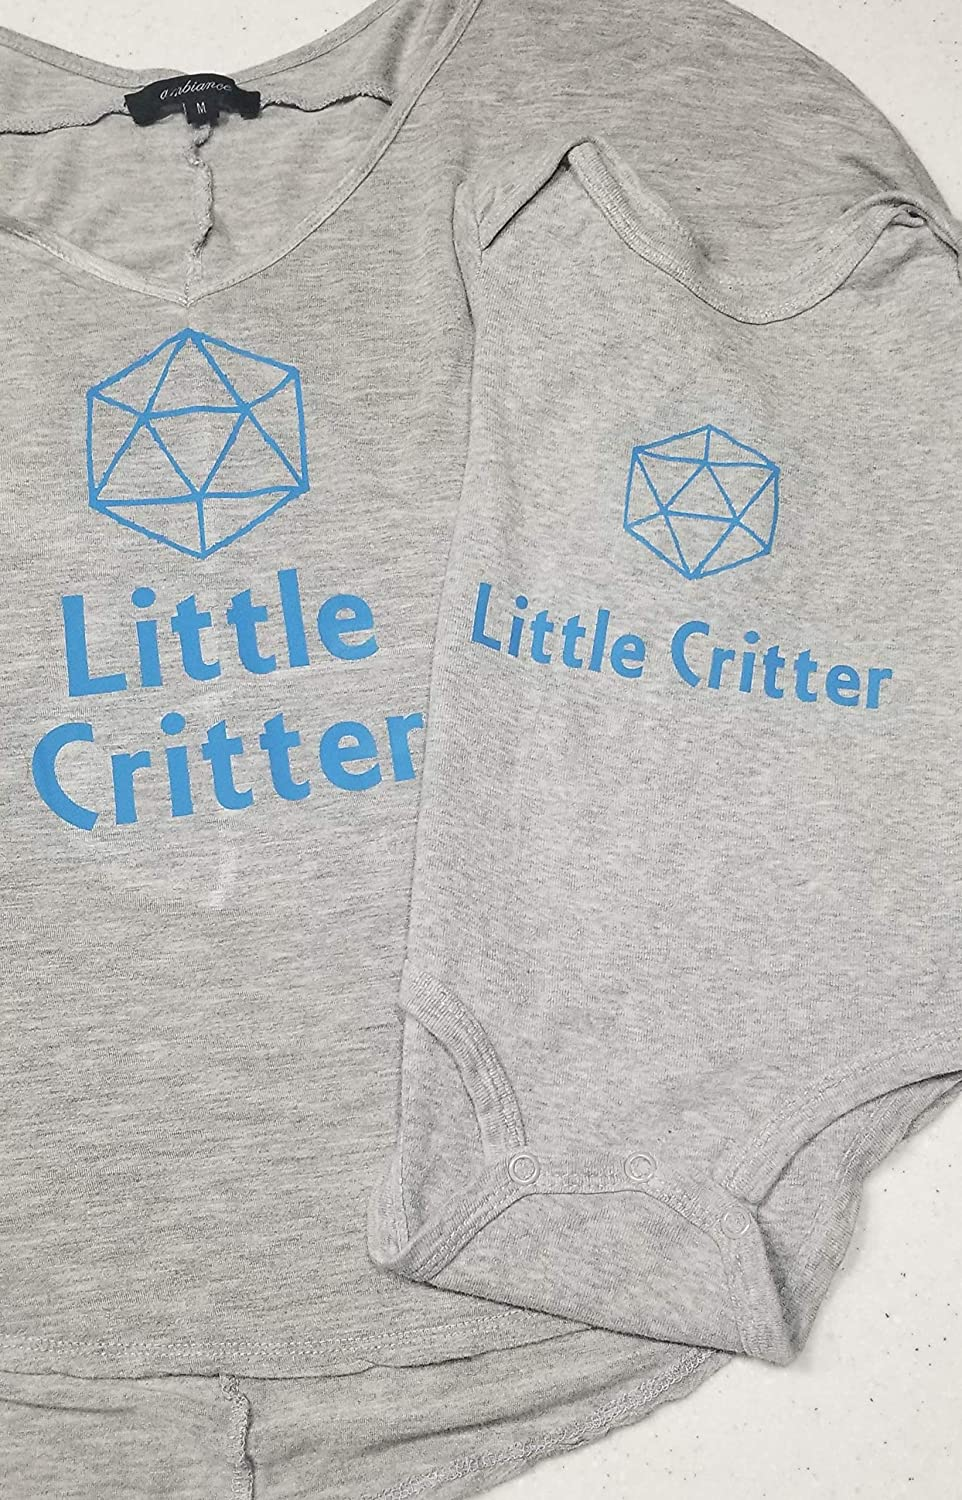 Little Critter Shirt Los Angeles SALENEW very popular! Mall DD and Dragons Dungeons D20